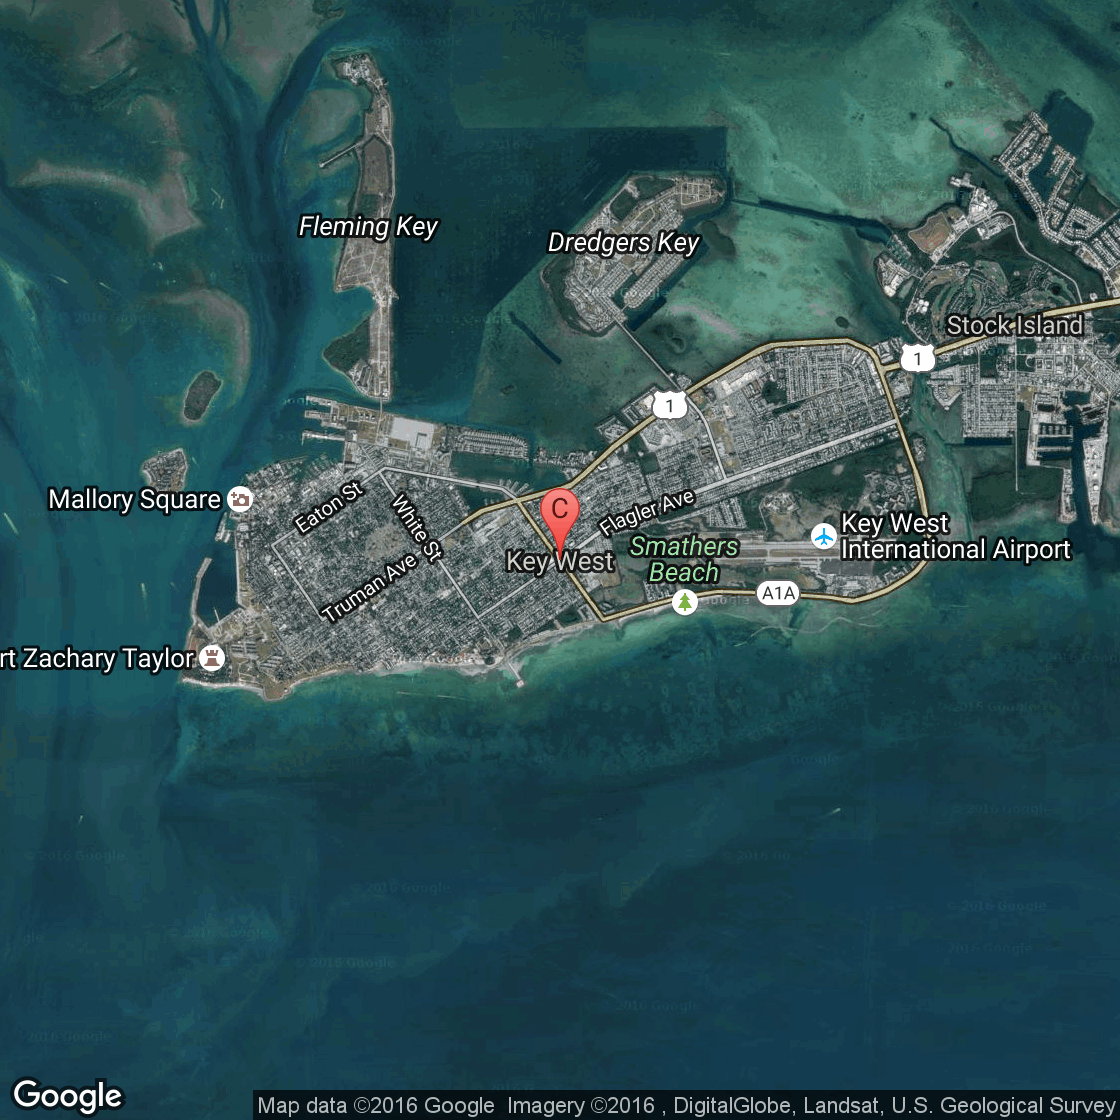 Hotels Near Mallory Square Key West Usa Today